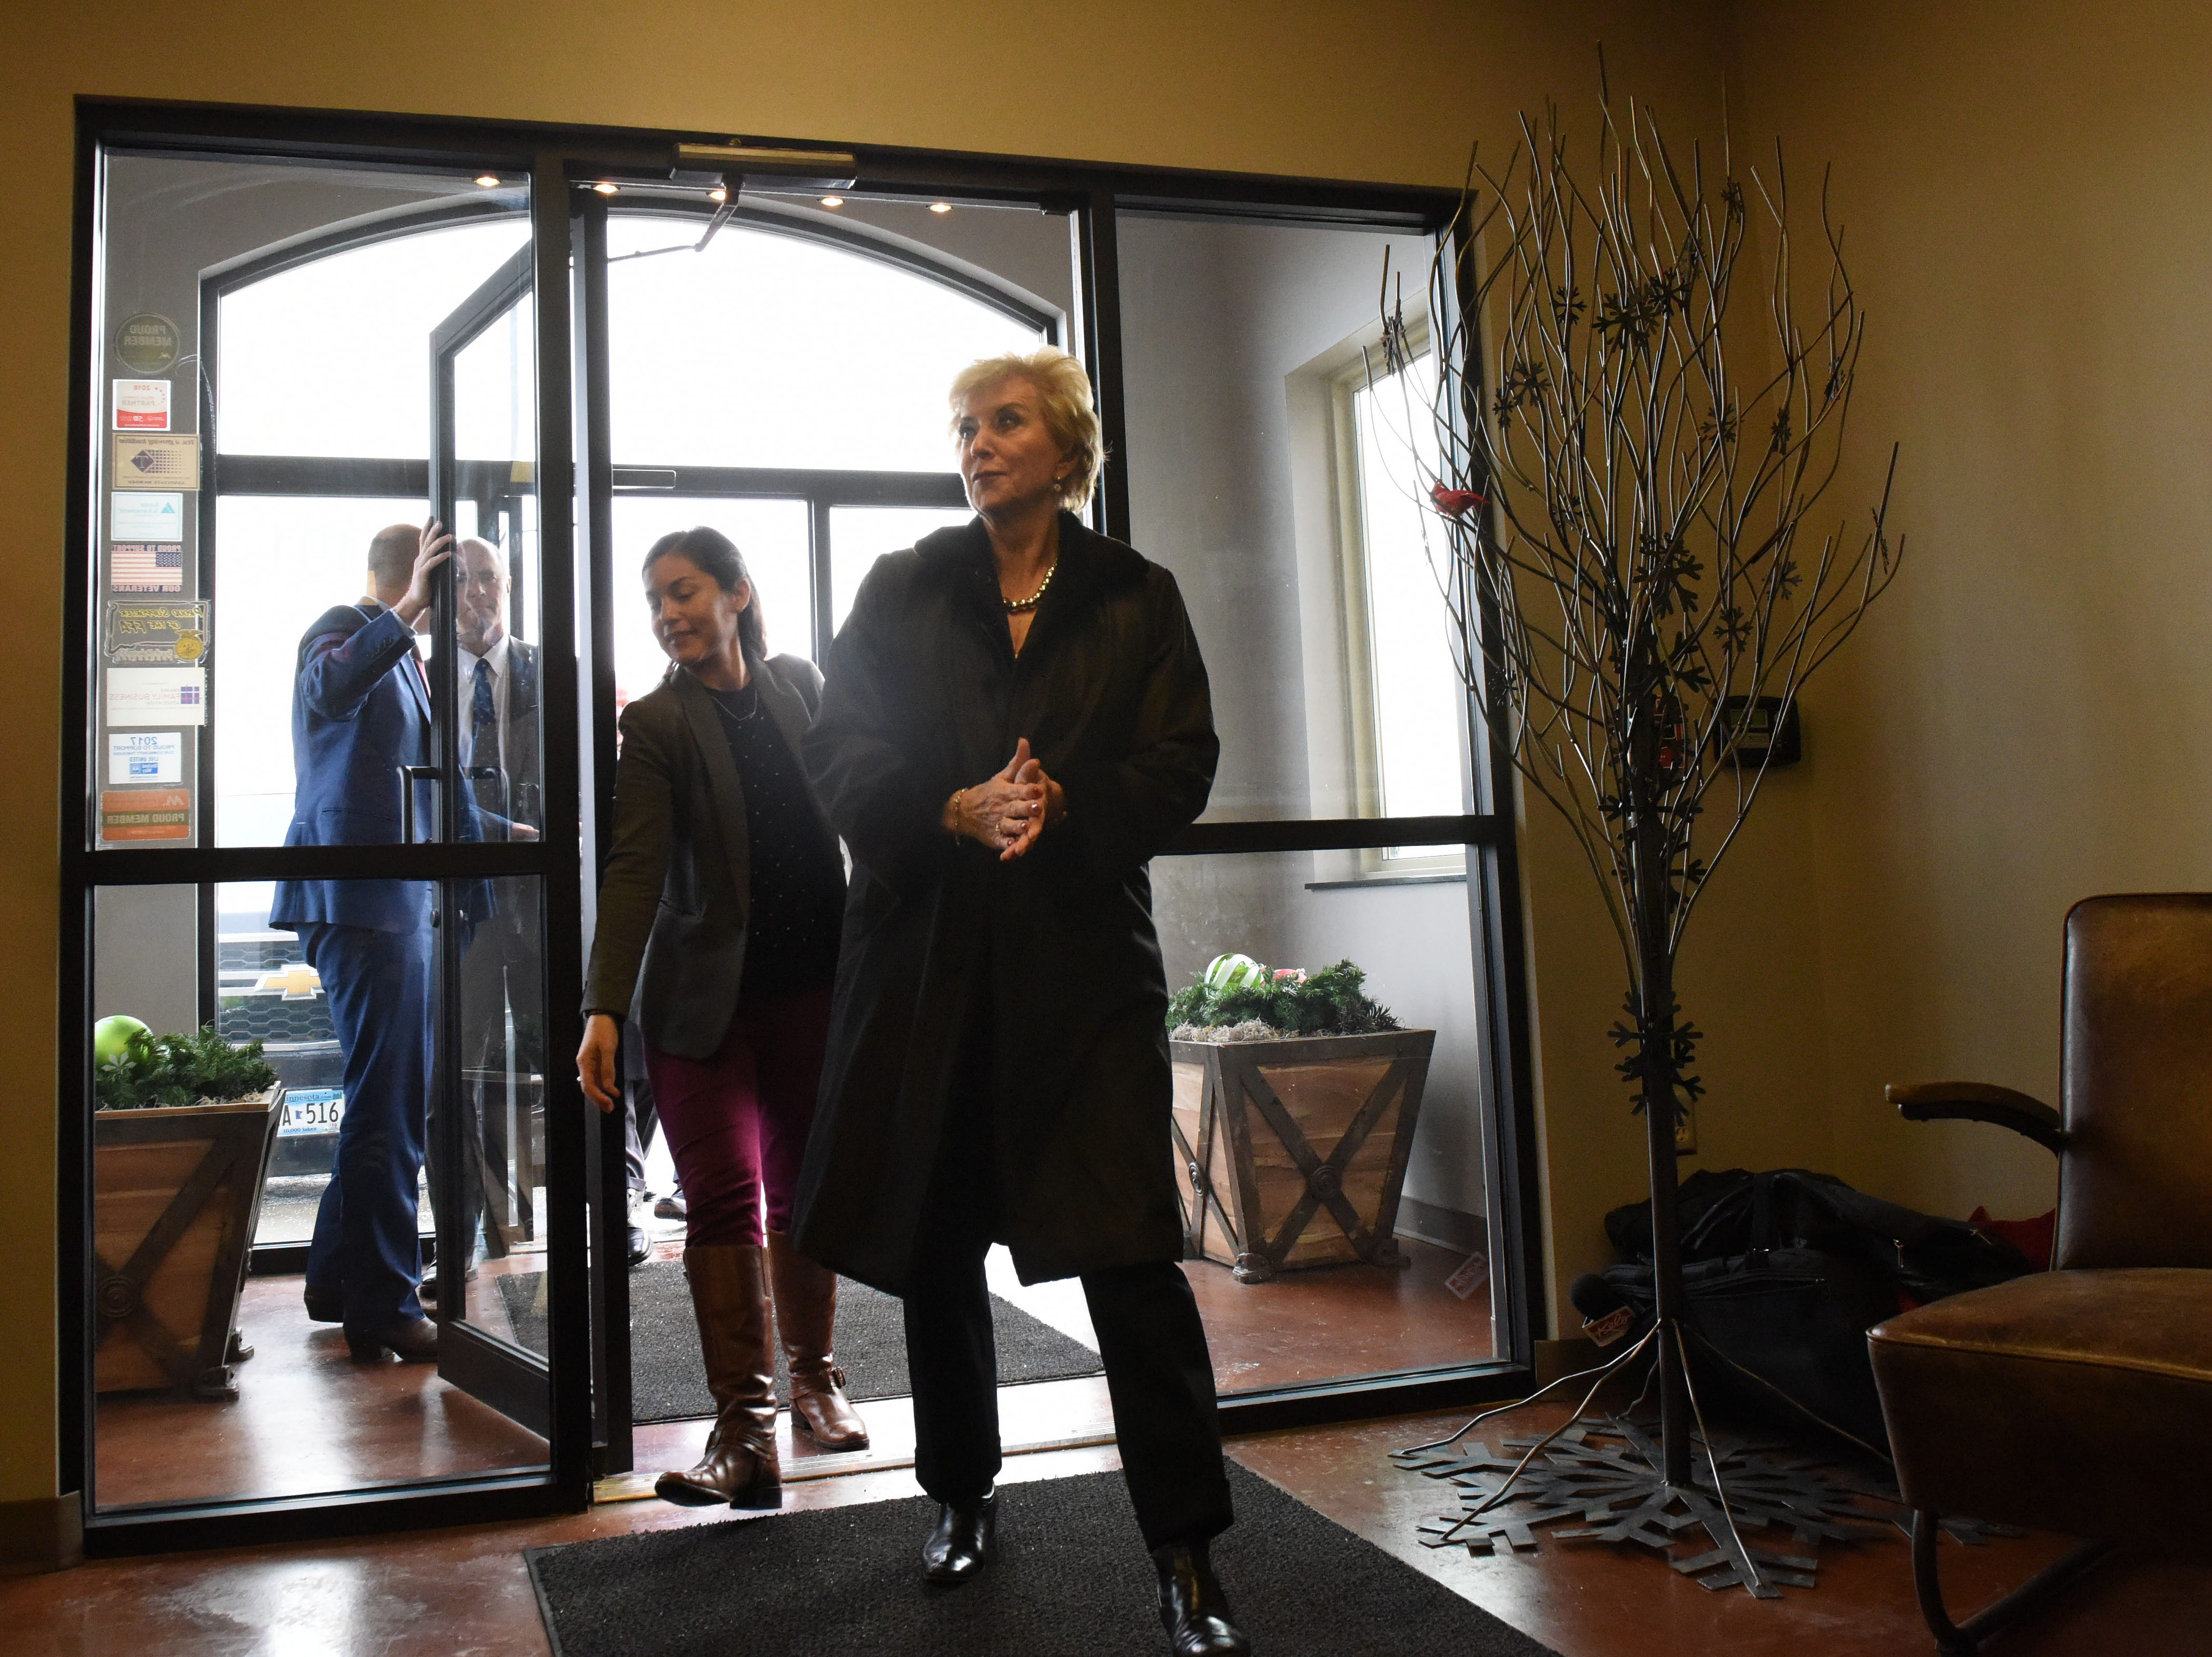 Linda McMahon, head of the U.S. Small Business Administration, gets a tour of DeGeest Steel Works in Tea, S.D., Thursday, Nov. 29, 2018.